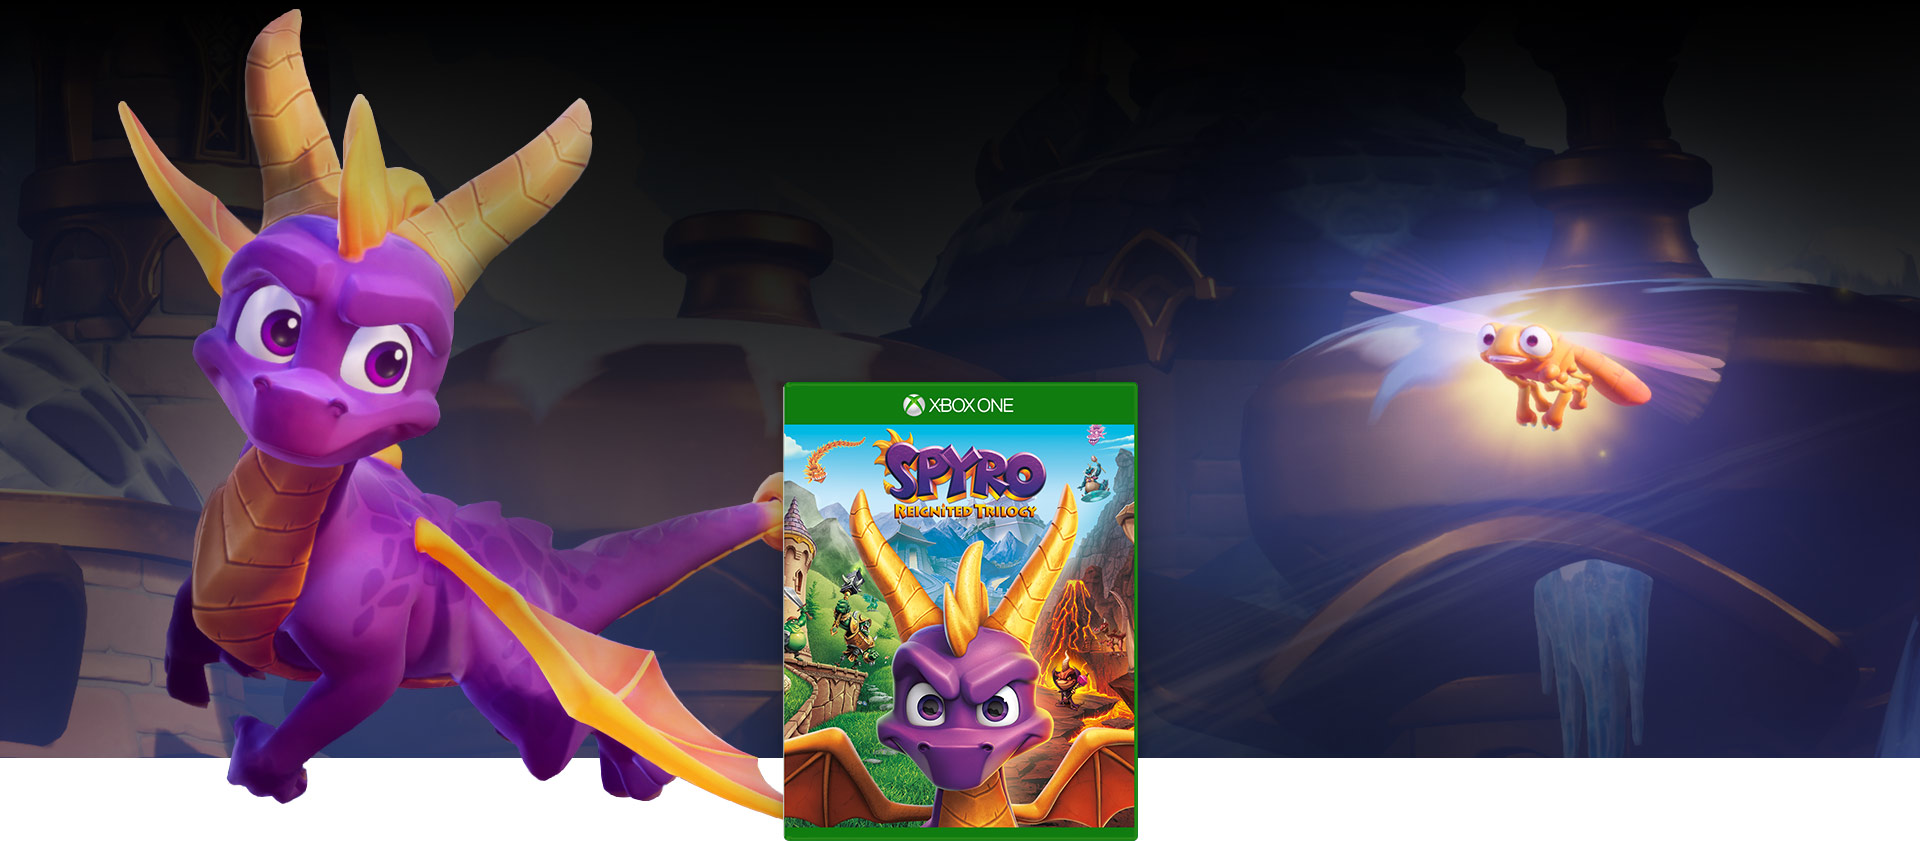 Spyro Reignited Trilogy boxshot with Spyro & Sparx flying